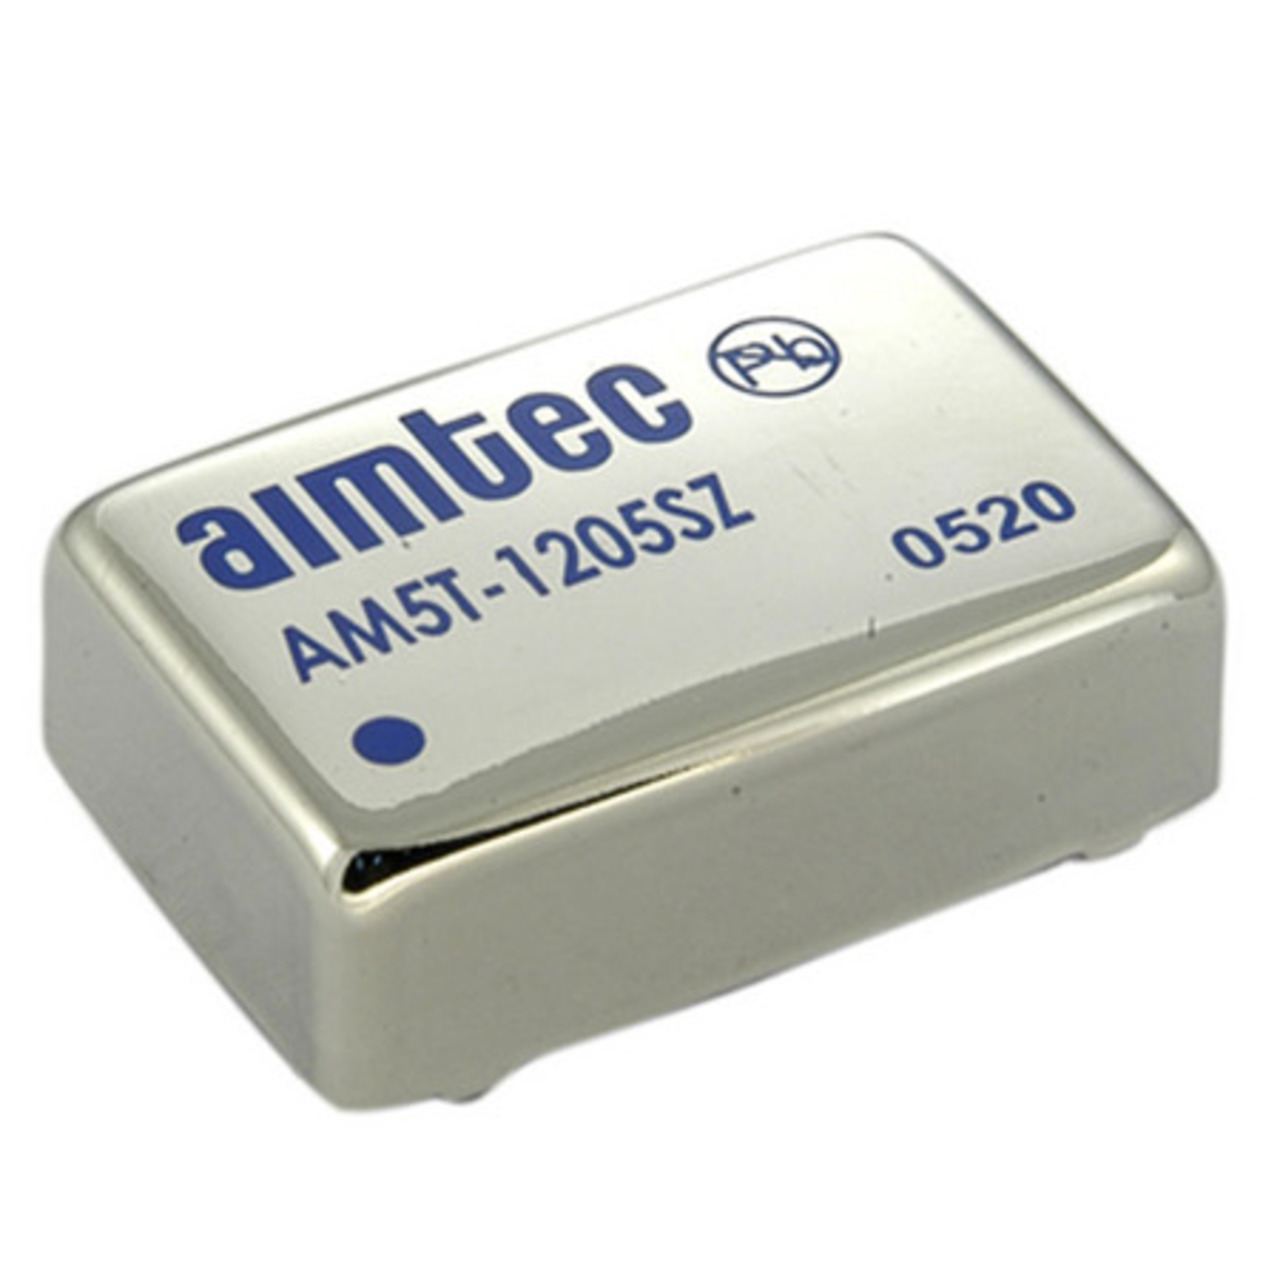 Image of Aimtec DC-DC Wandler 5 V/ 1000 mA - Serie AM5T-Z